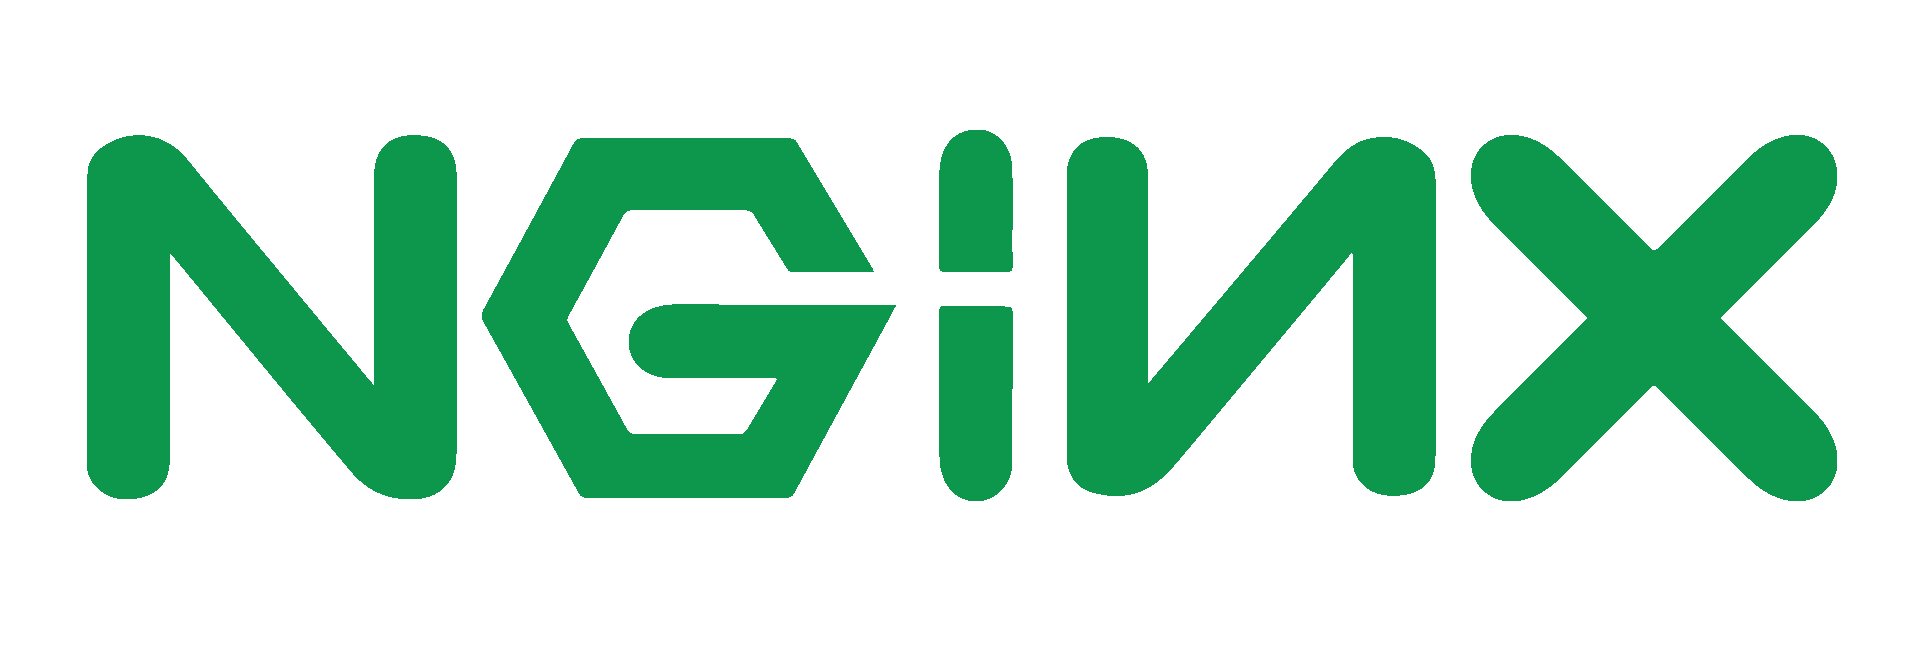 NGINX OpenResty logo extension moesif